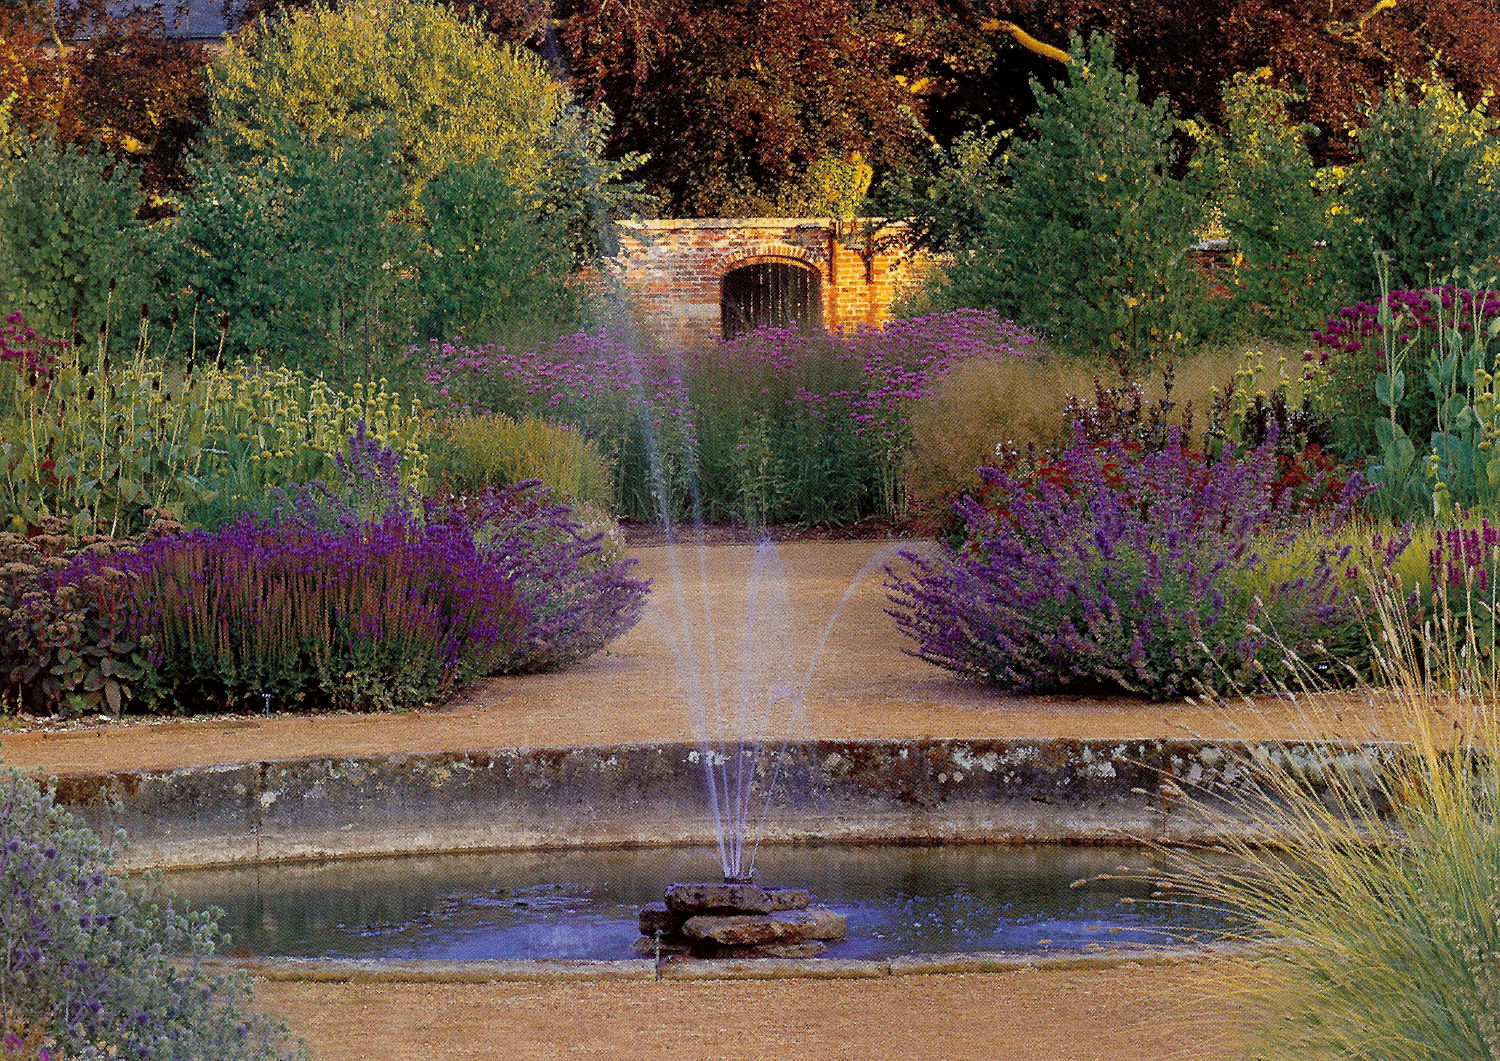 walled gardens - Perennial meadow oval fountain in the Scampston Walled Garden, Yorkshire, England - House & Garden via Atticmag